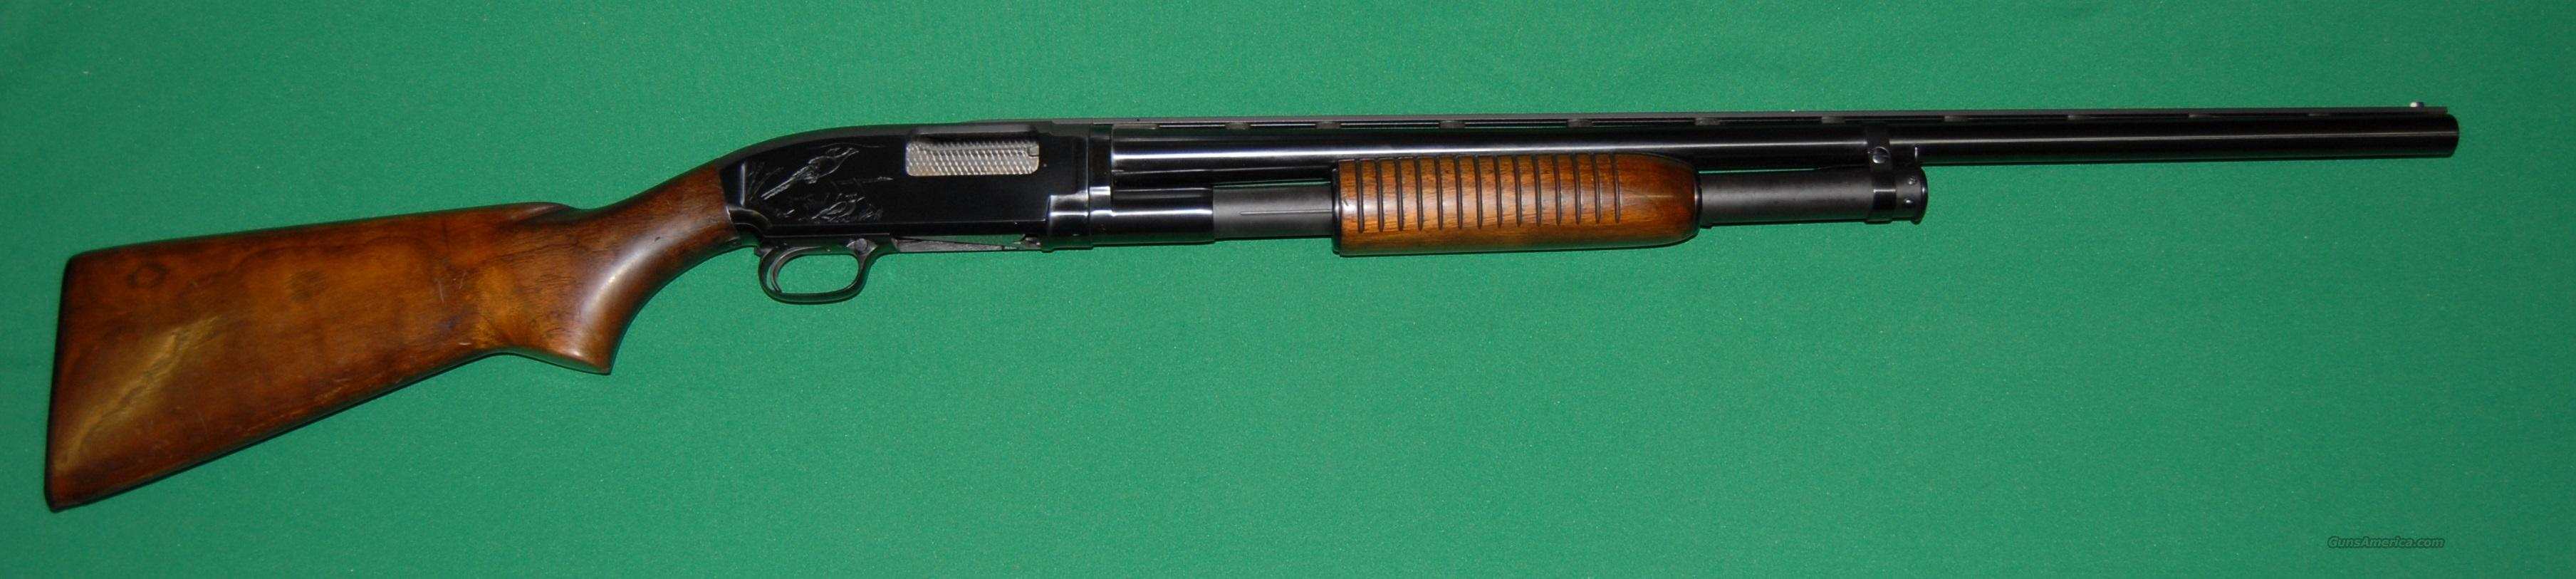 Winchester Model 12 12ga.  Guns > Shotguns > Winchester Shotguns - Modern > Pump Action > Hunting